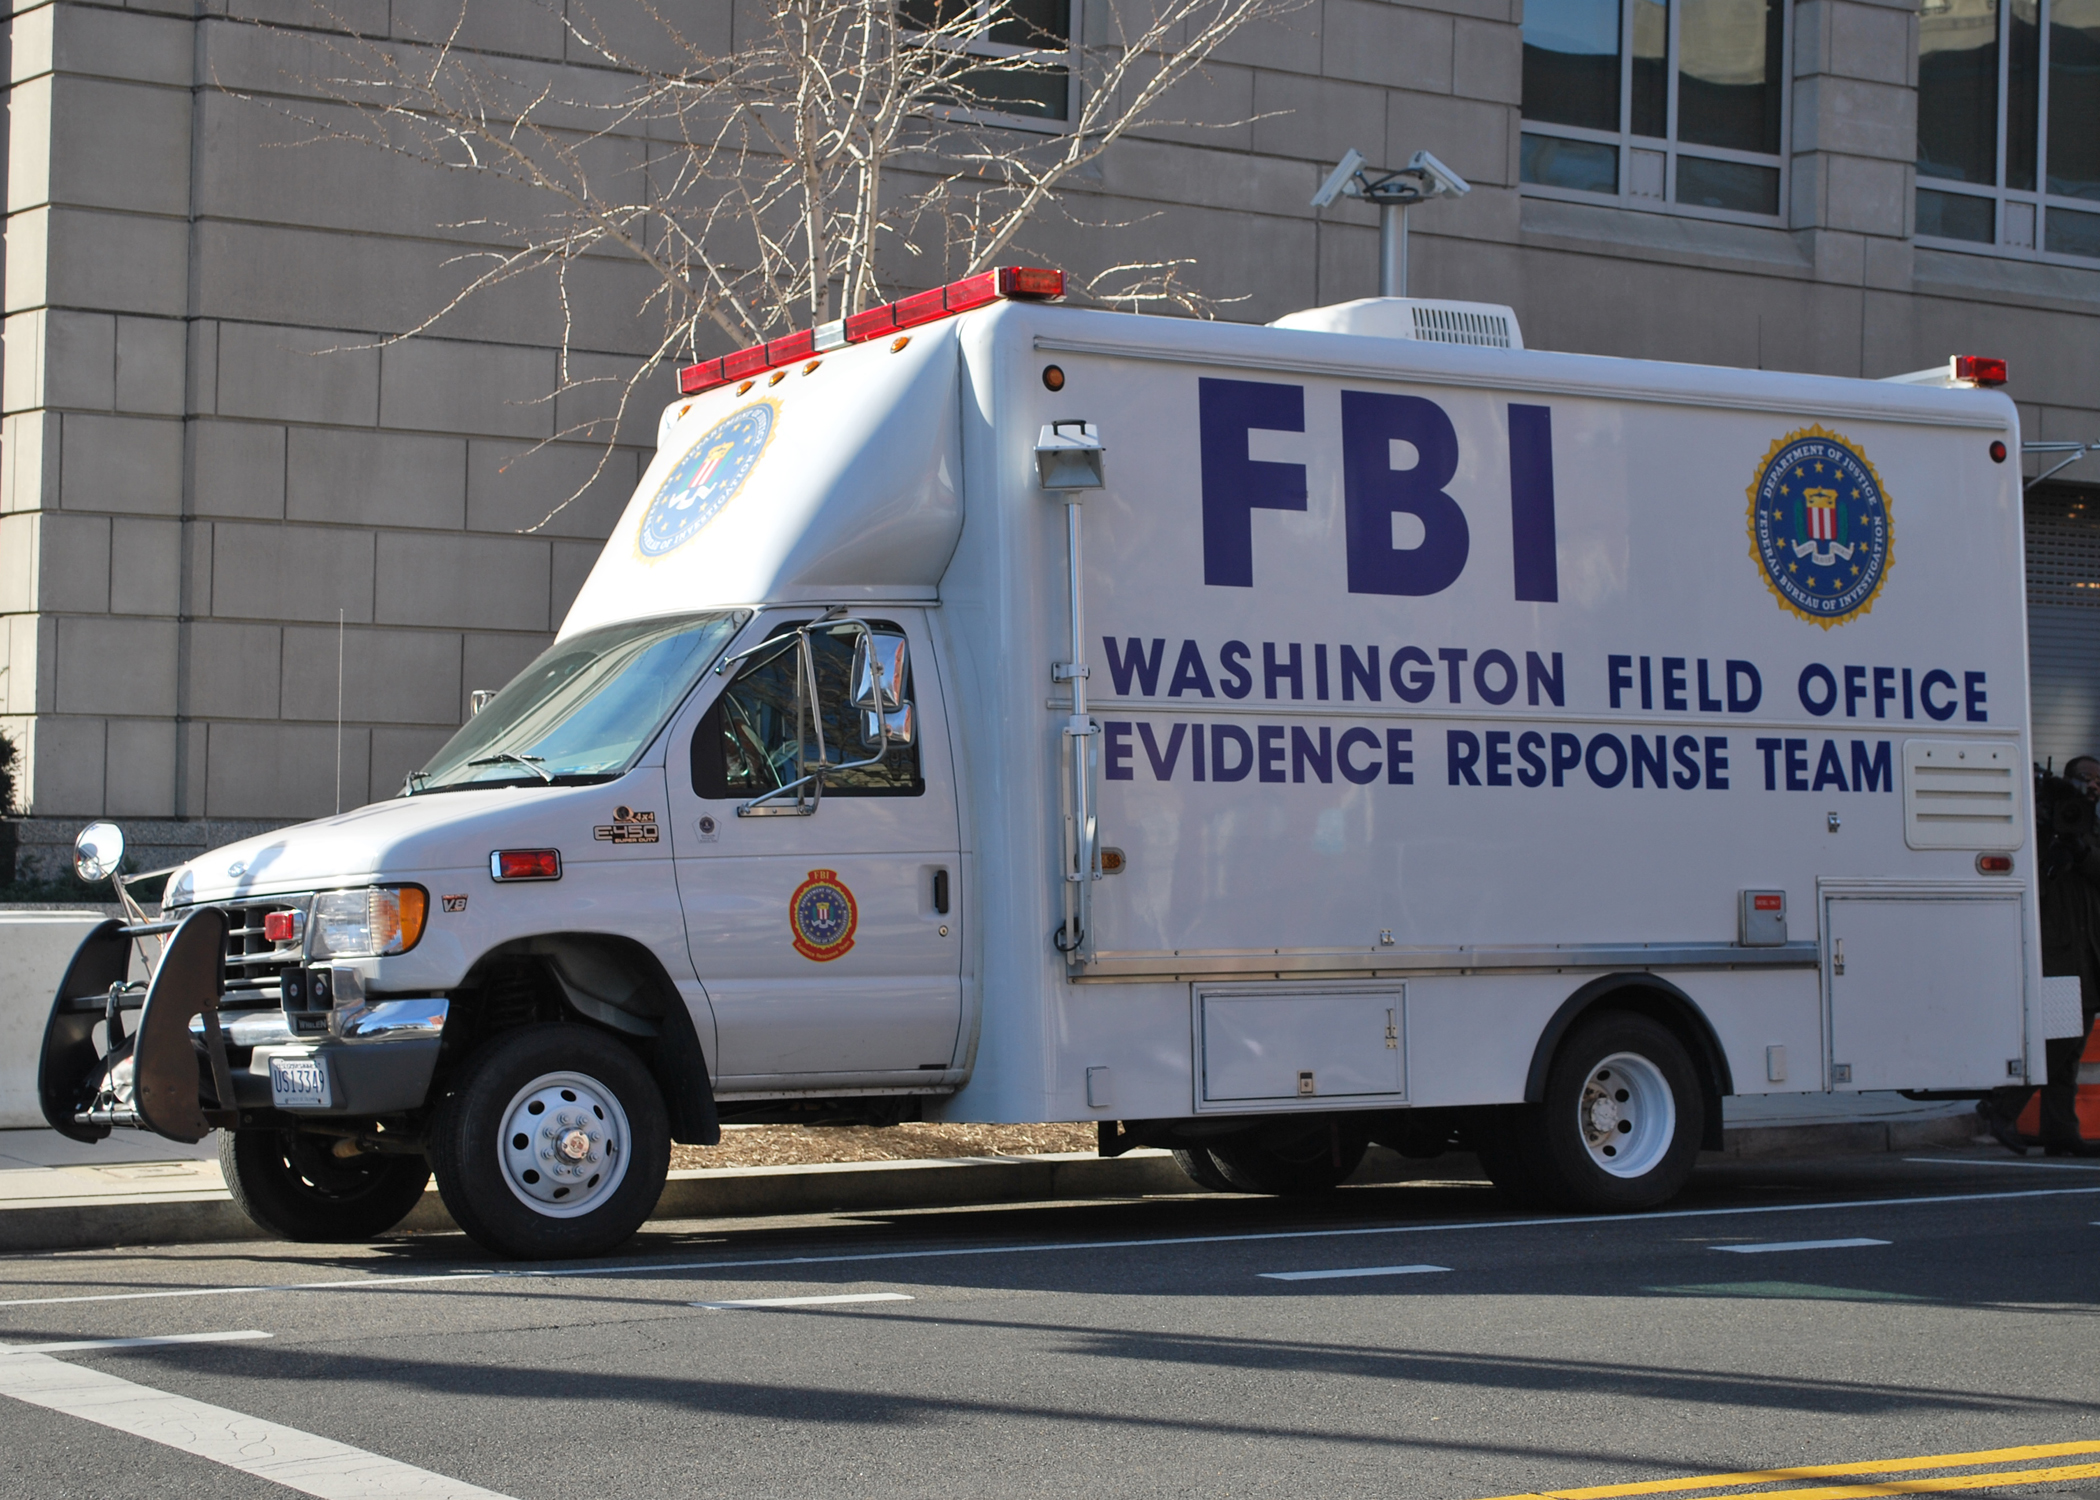 Описание fbi evidence response team vehicle